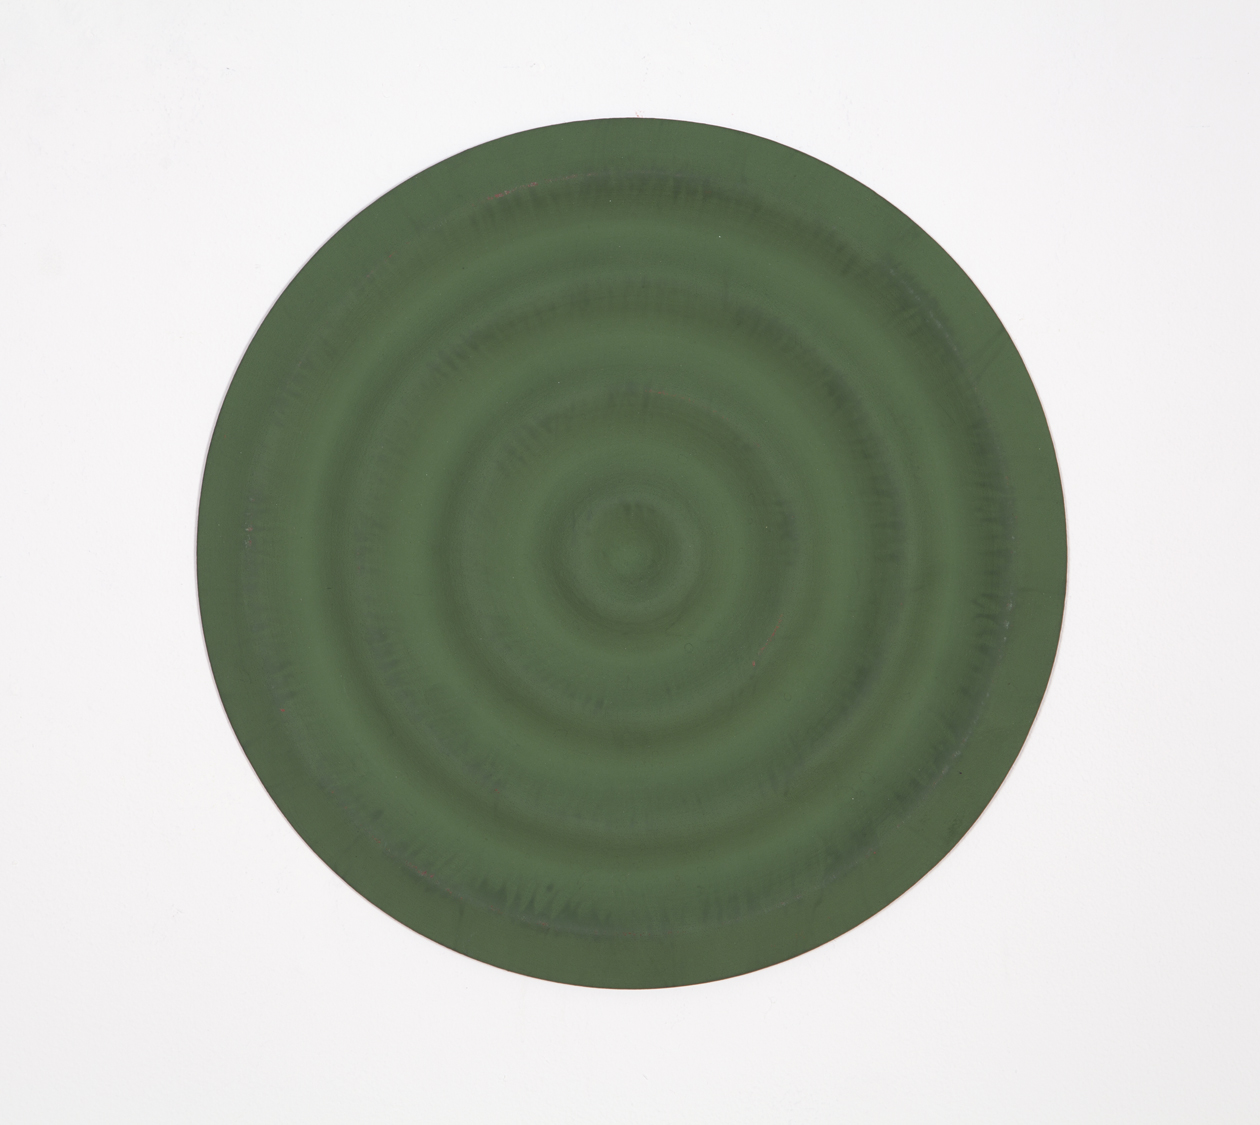 Copy of Rupert Deese, Four Wavelets no.1, 1998 oil on wood 12 inch diameter